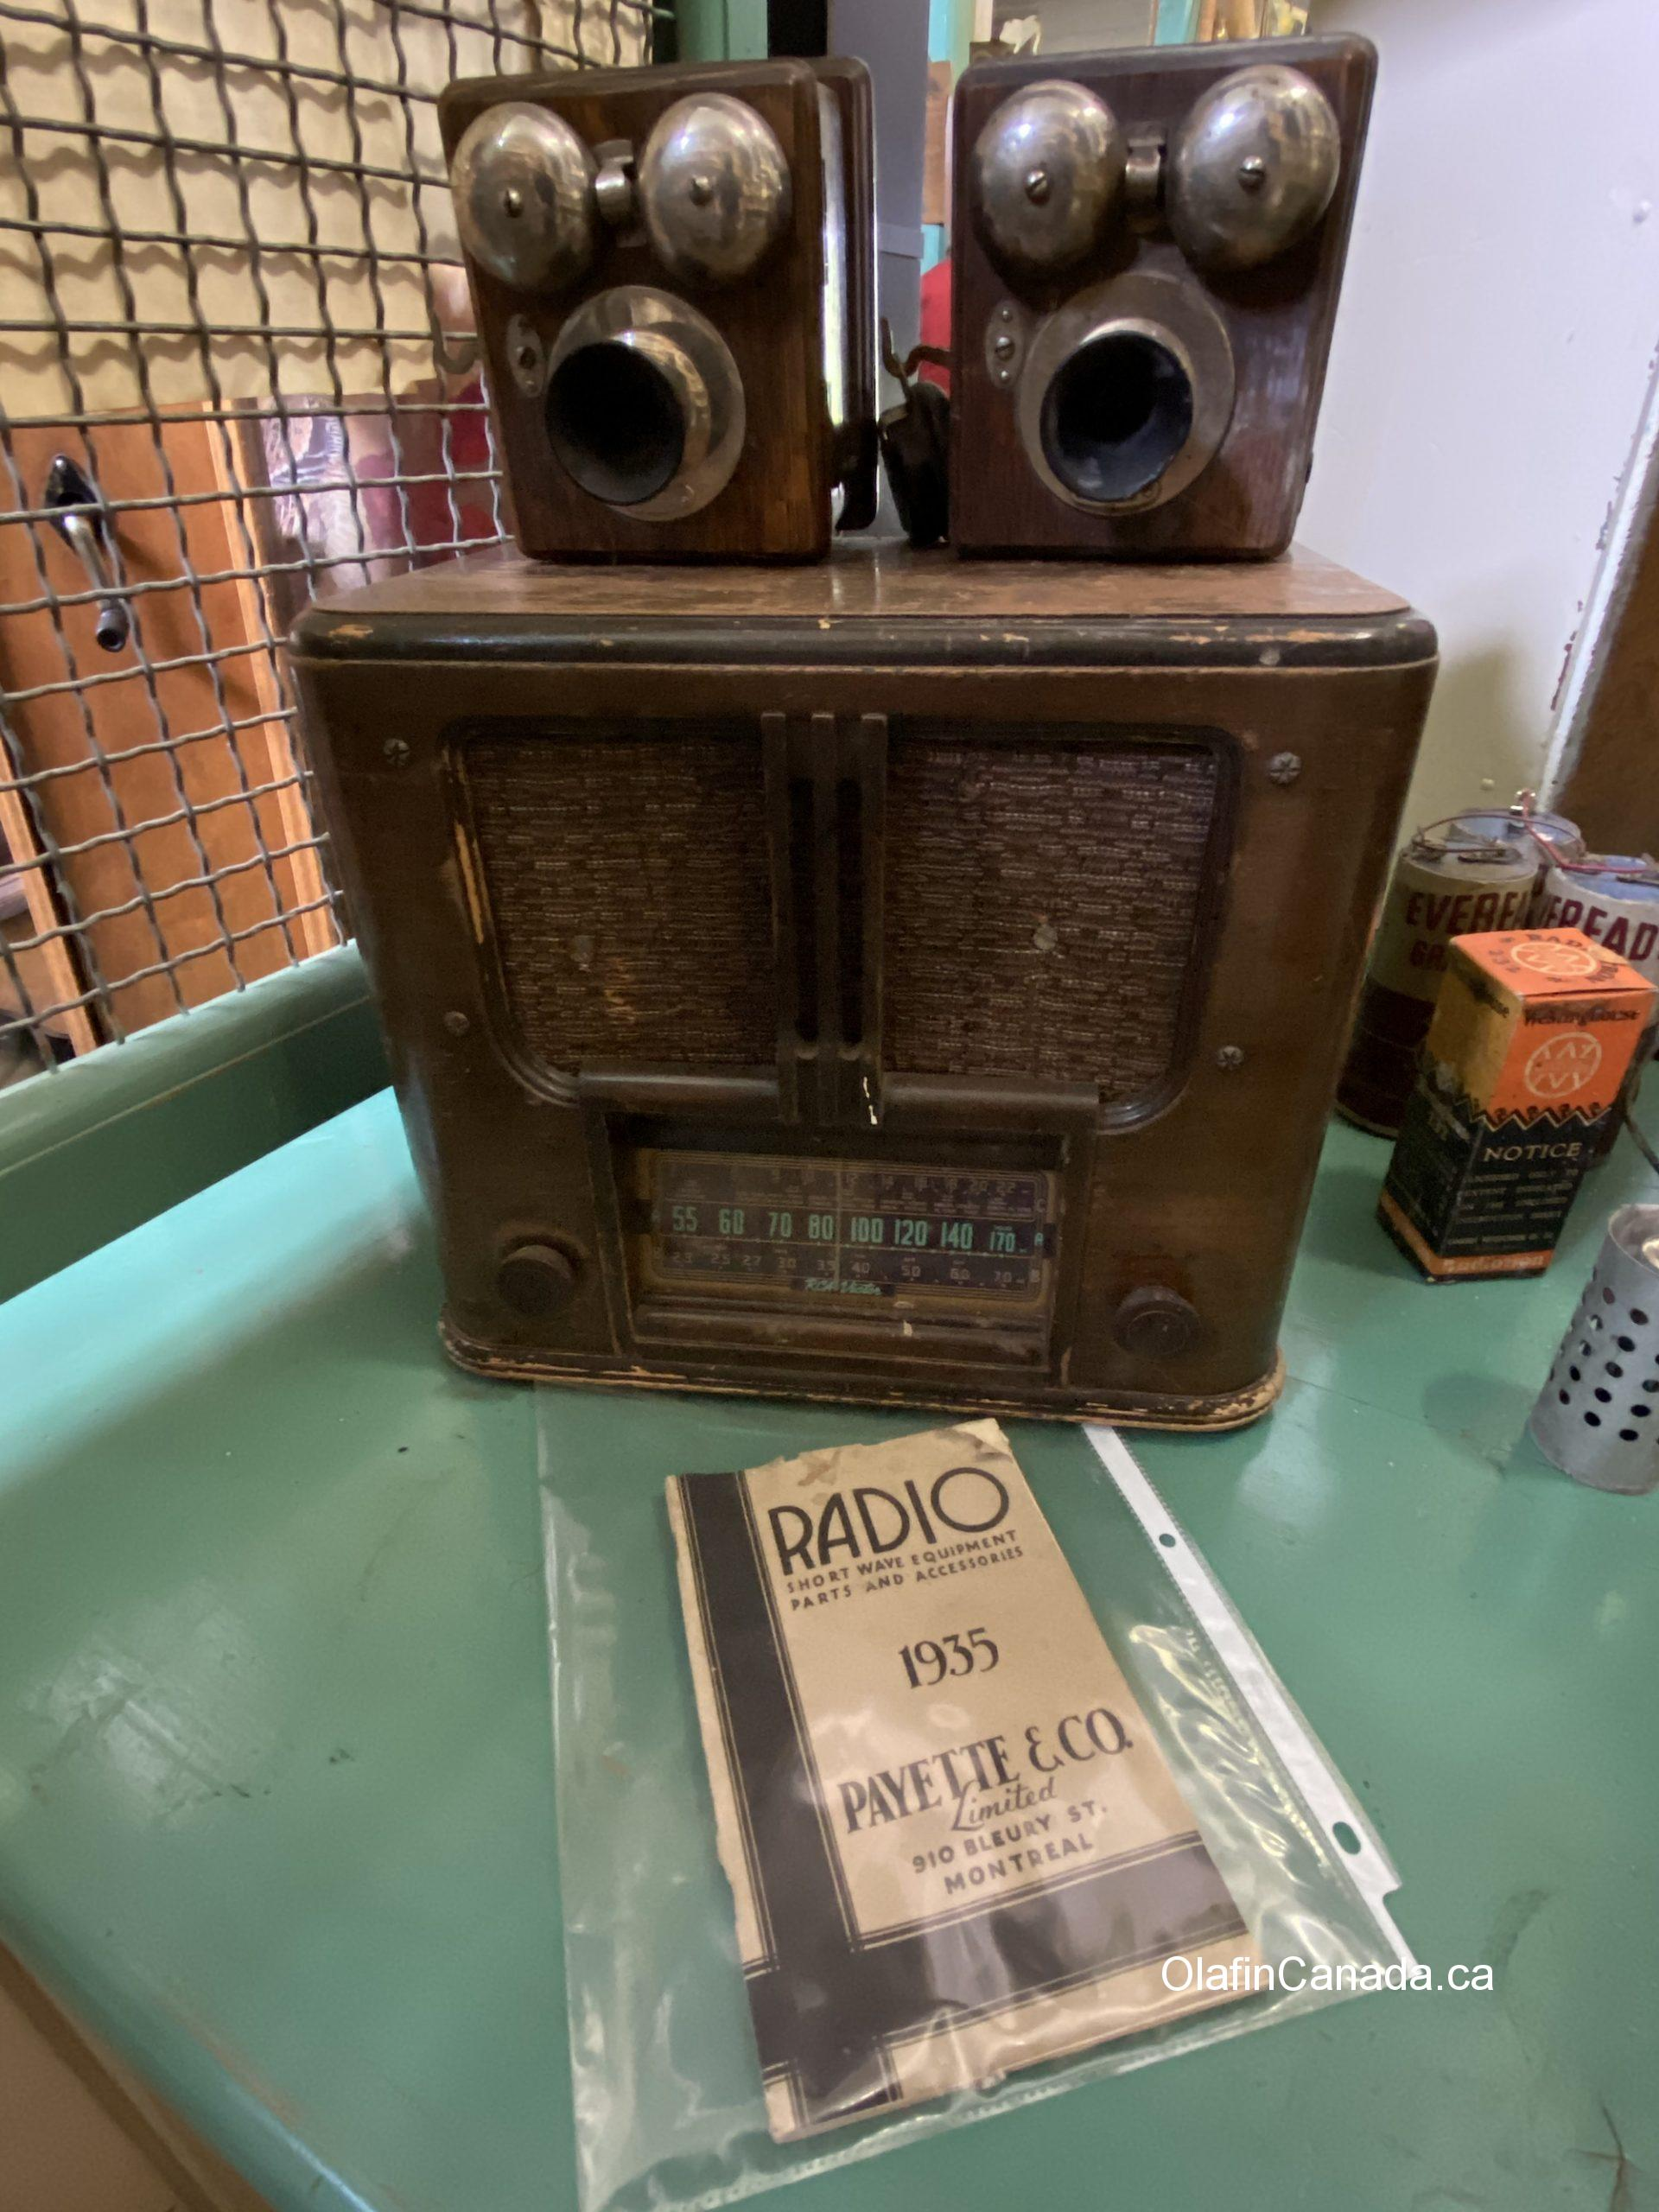 Old radio at the General Store in 153 Mile House #olafincanada #britishcolumbia #discoverbc #abandonedbc #153milehouse #generalstore #backintime